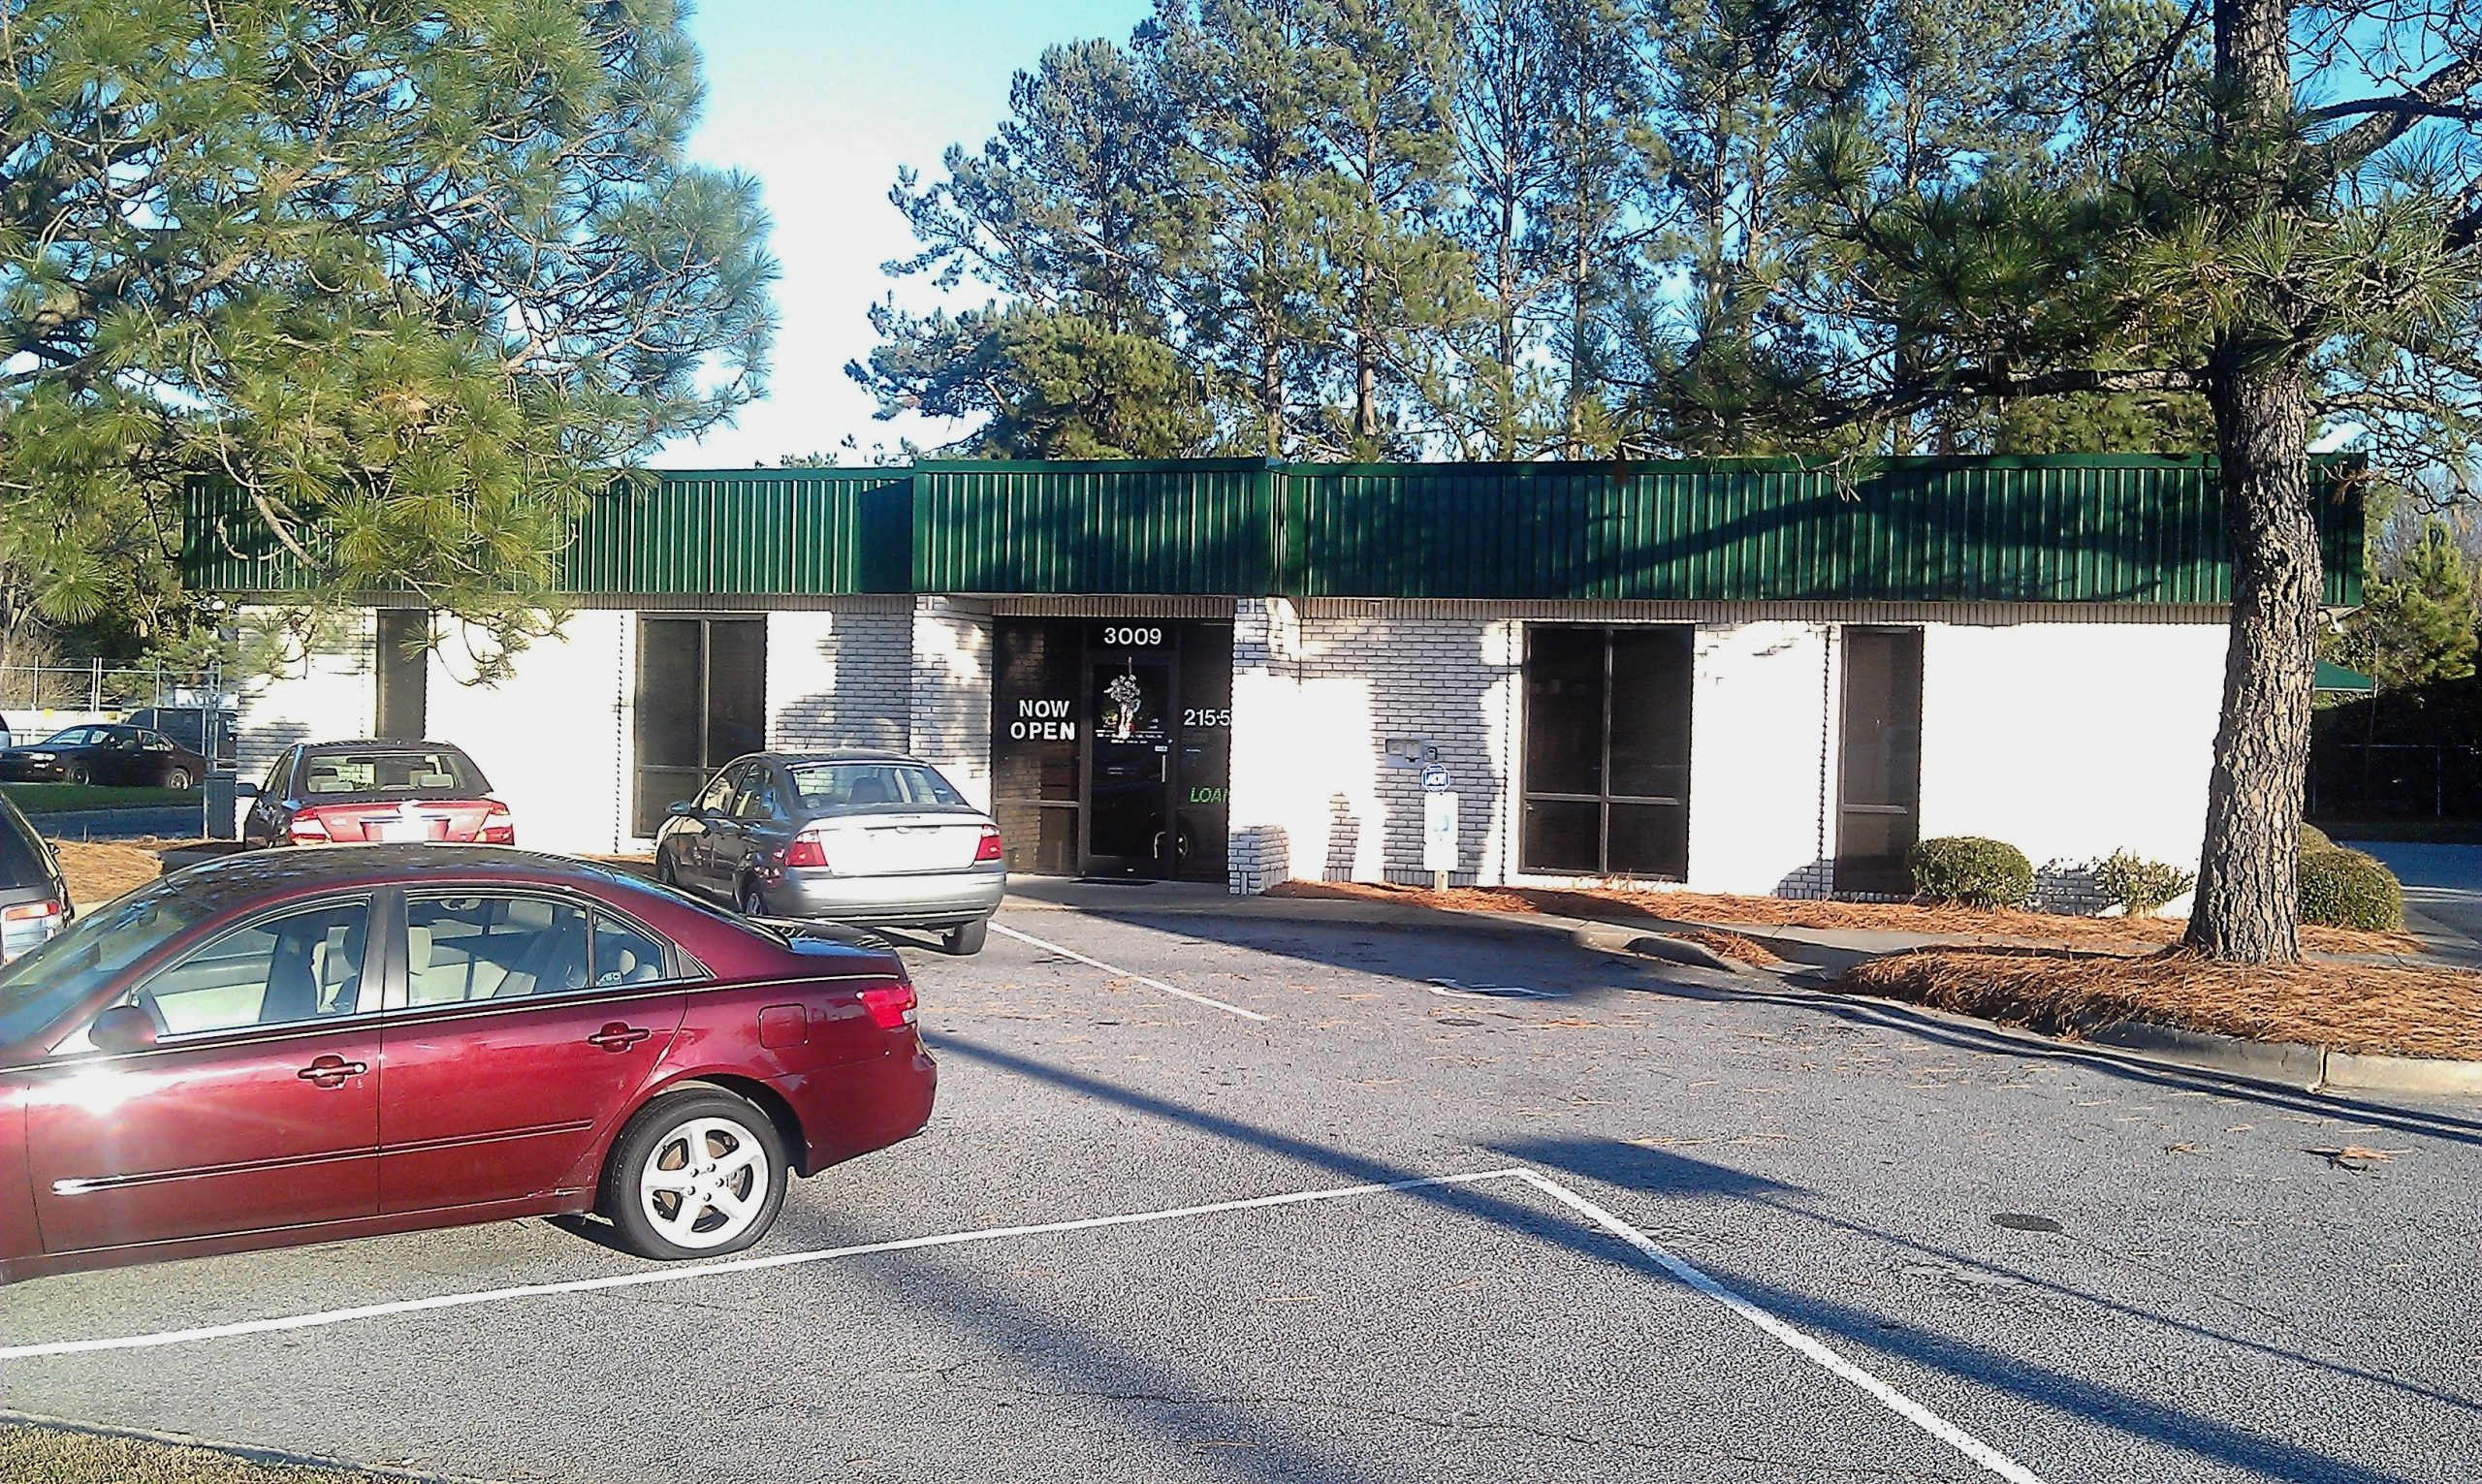 Greenville Location 3009 S. Memorial Drive, Greenville, NC 27833 252-215-5670